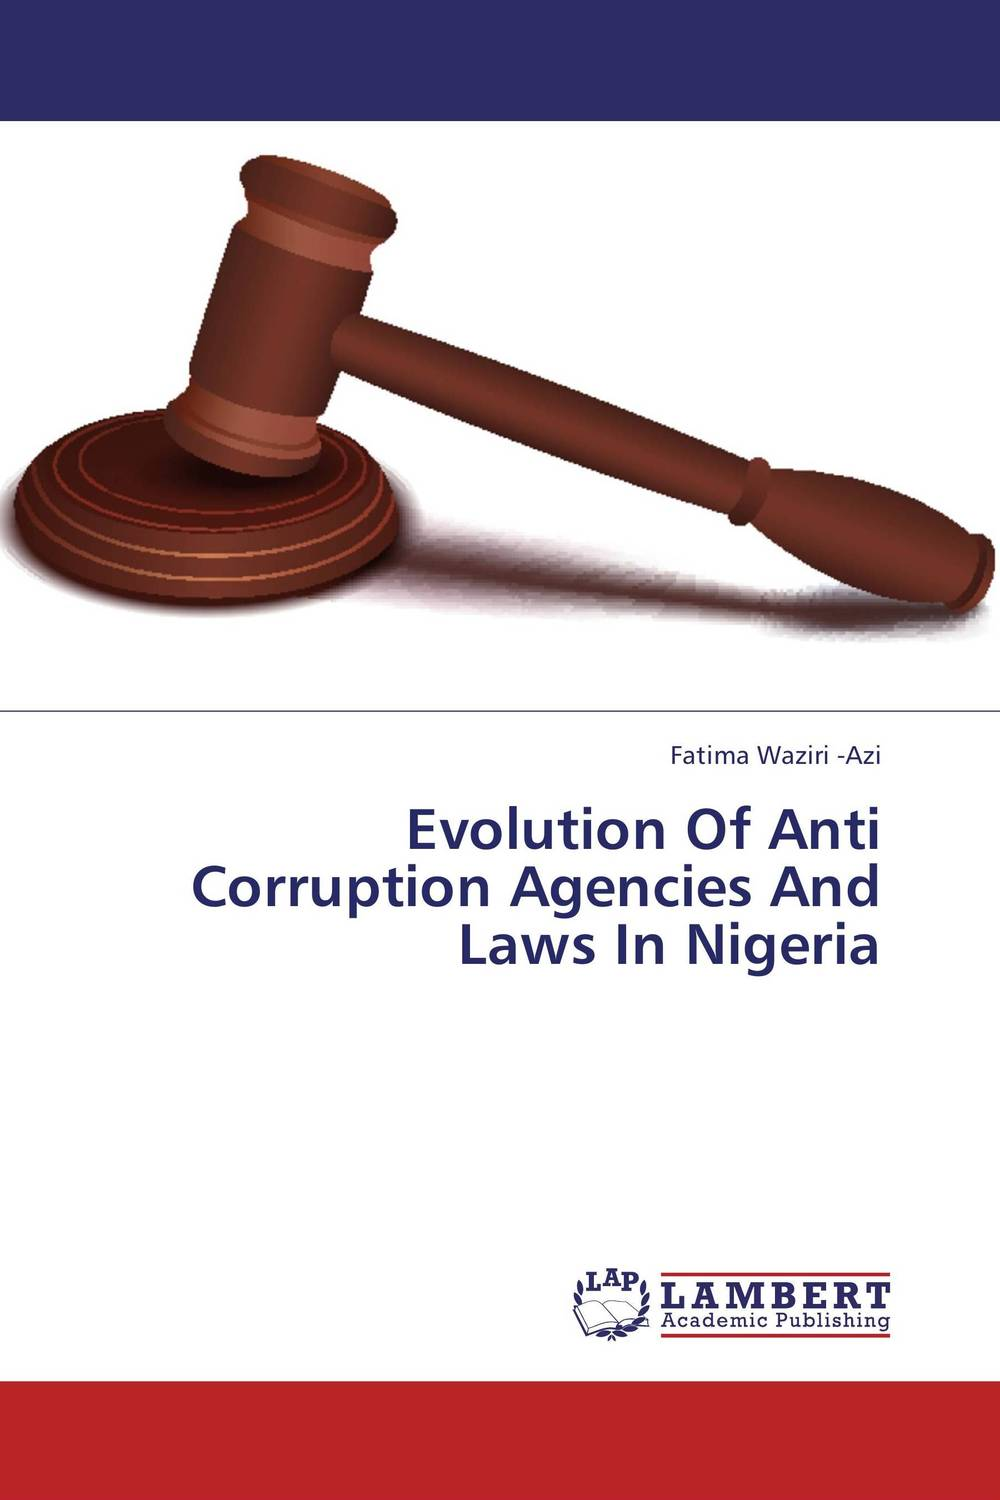 купить Evolution Of Anti Corruption Agencies And Laws In Nigeria недорого